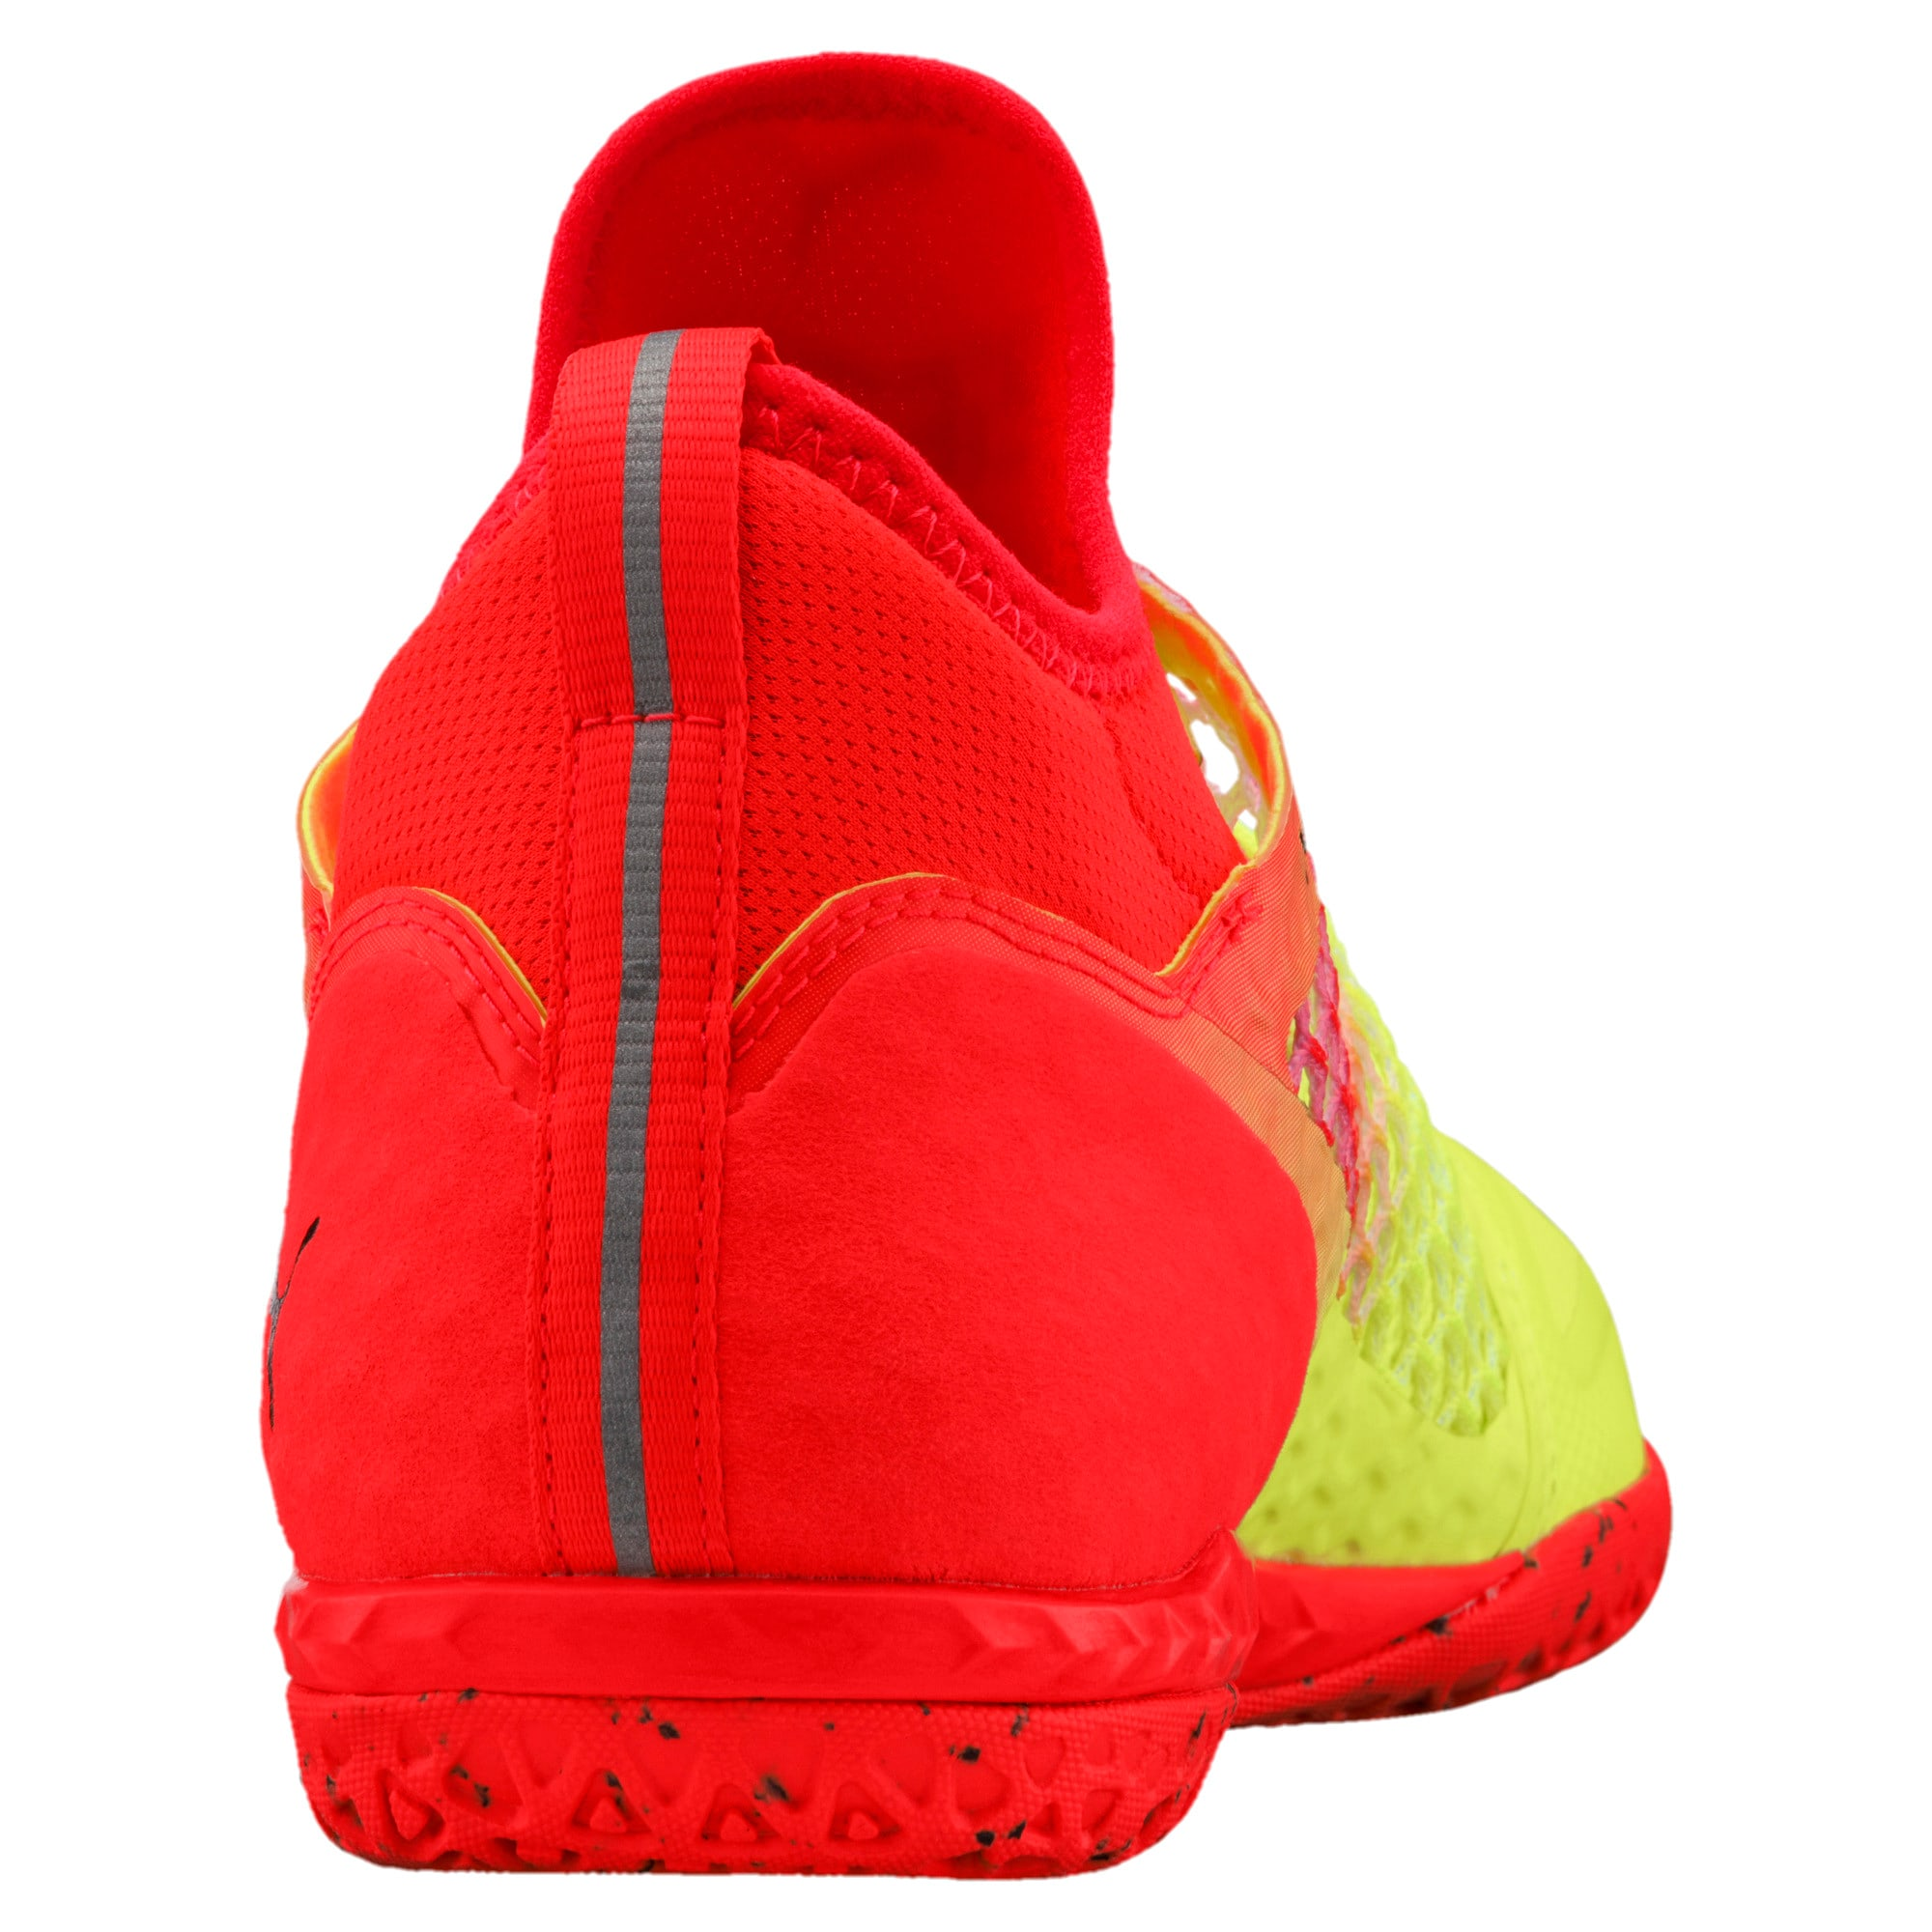 Thumbnail 3 of 365 IGNITE NETFIT CT Men's Court Football Boots, Yellow-Red-Black, medium-IND